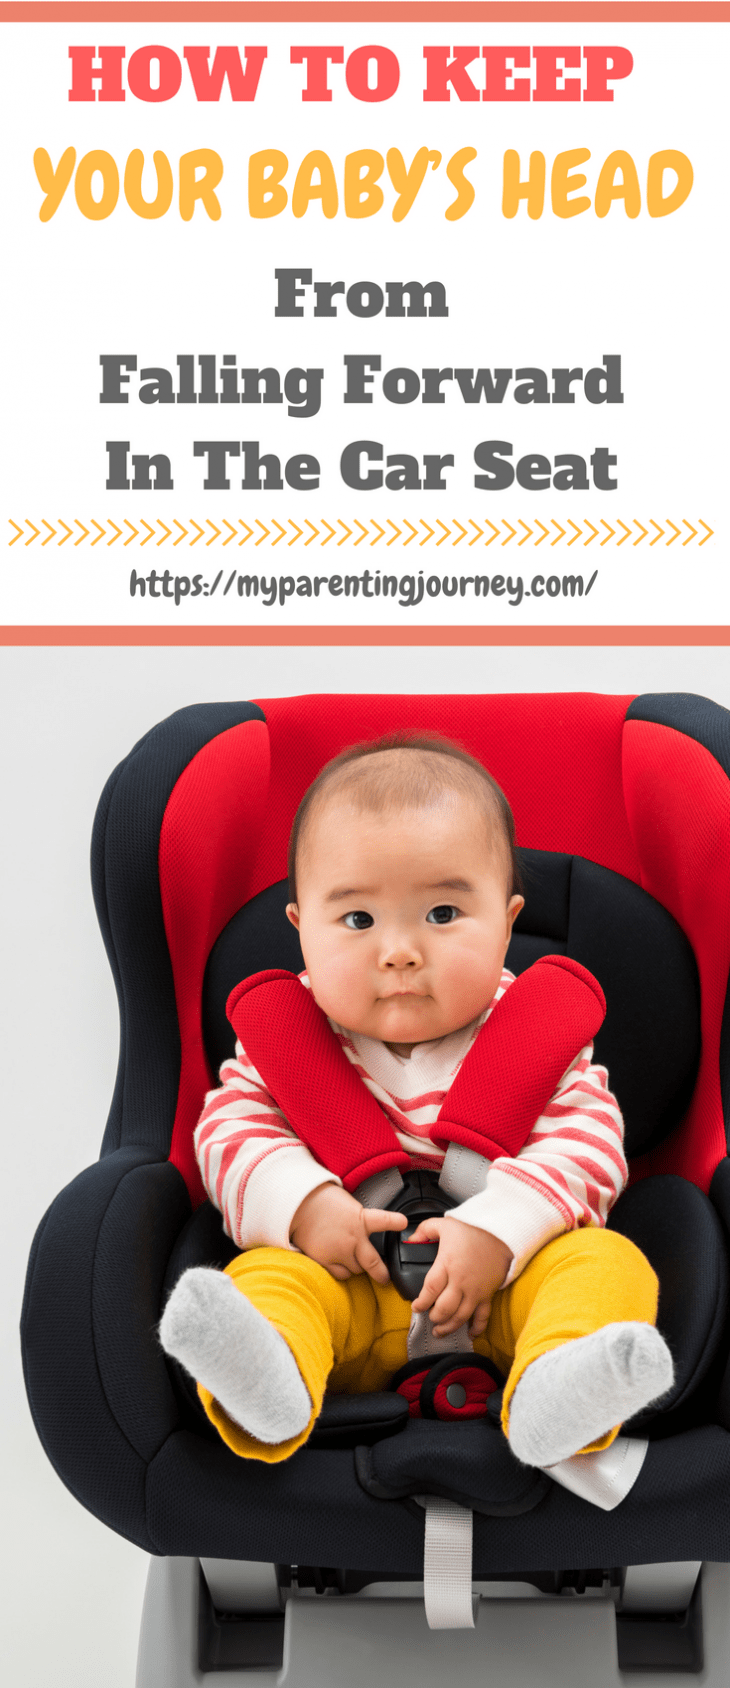 It can be scary to look in your rear-view mirror and see your tiny little baby's head slumped forward. Especially when the nurses and doctors at the hospital have drilled into your head the importance of keeping her neck straight and head supported. Read on as I explain how to keep your baby's head from falling forward in a car seat and how to ensure her safety.